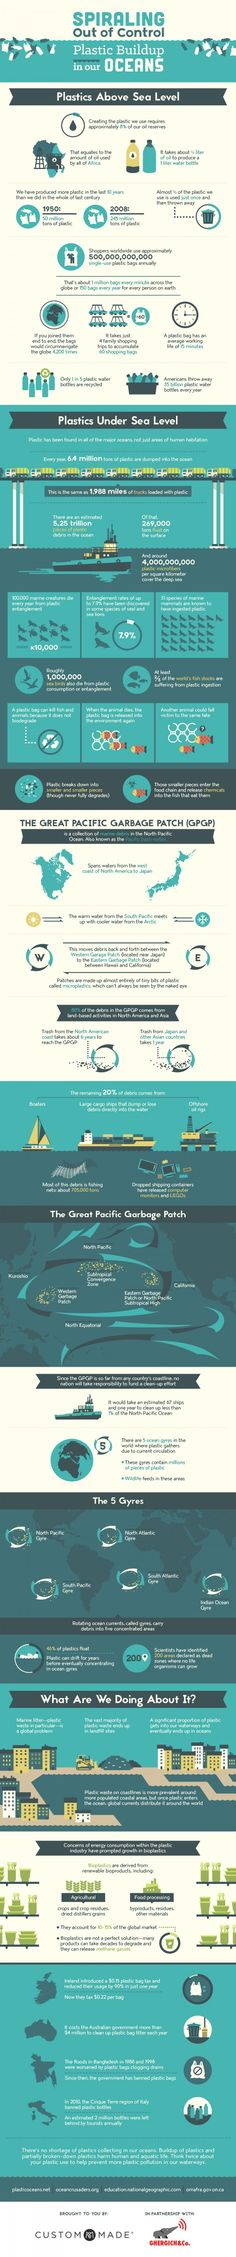 INFOGRAPHIC: Our ocean plastic problem is quickly spiraling out of control Inhabitat - Sustainable Design Innovation, Eco Architecture, Green Building Ocean Pollution, Plastic Pollution, Plastic Problems, Save Our Oceans, Environmental Issues, Environmental Degradation, Environmental Pollution, Environmental Education, Marine Biology